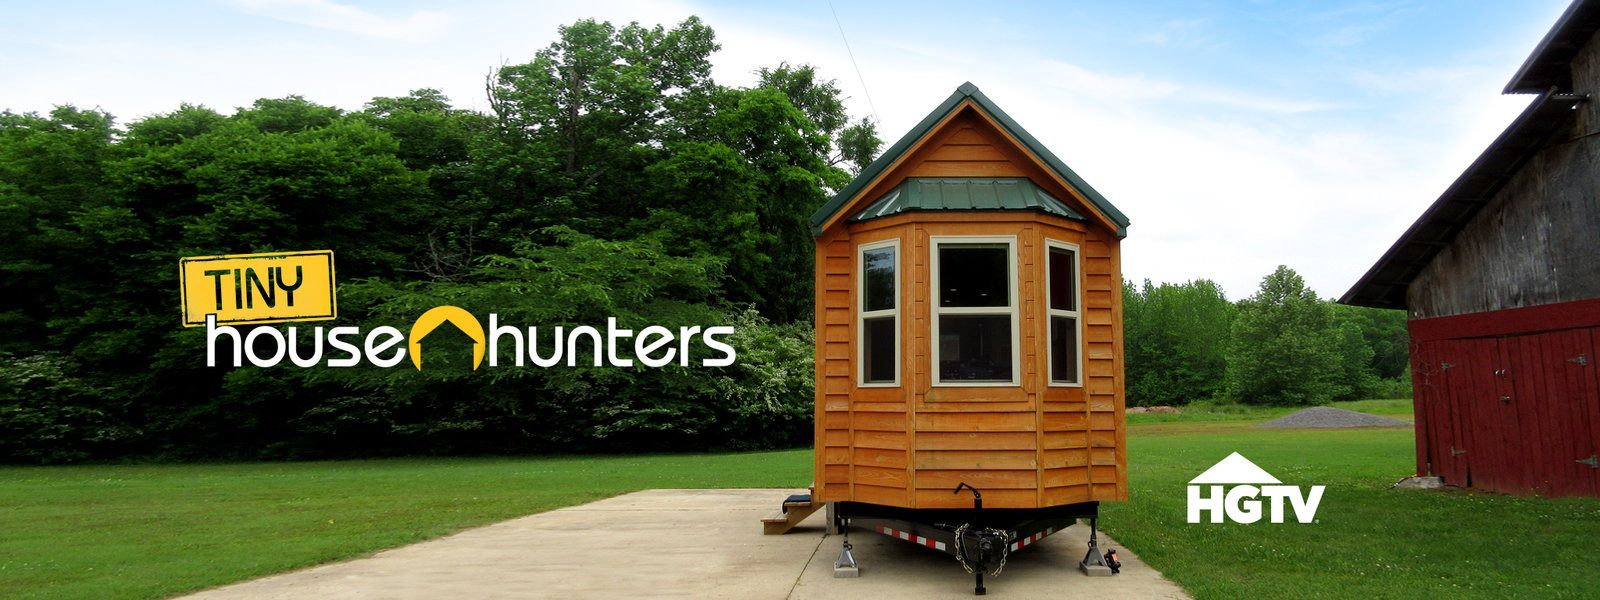 The Best Tiny House Hunters Full Episodes Online Free